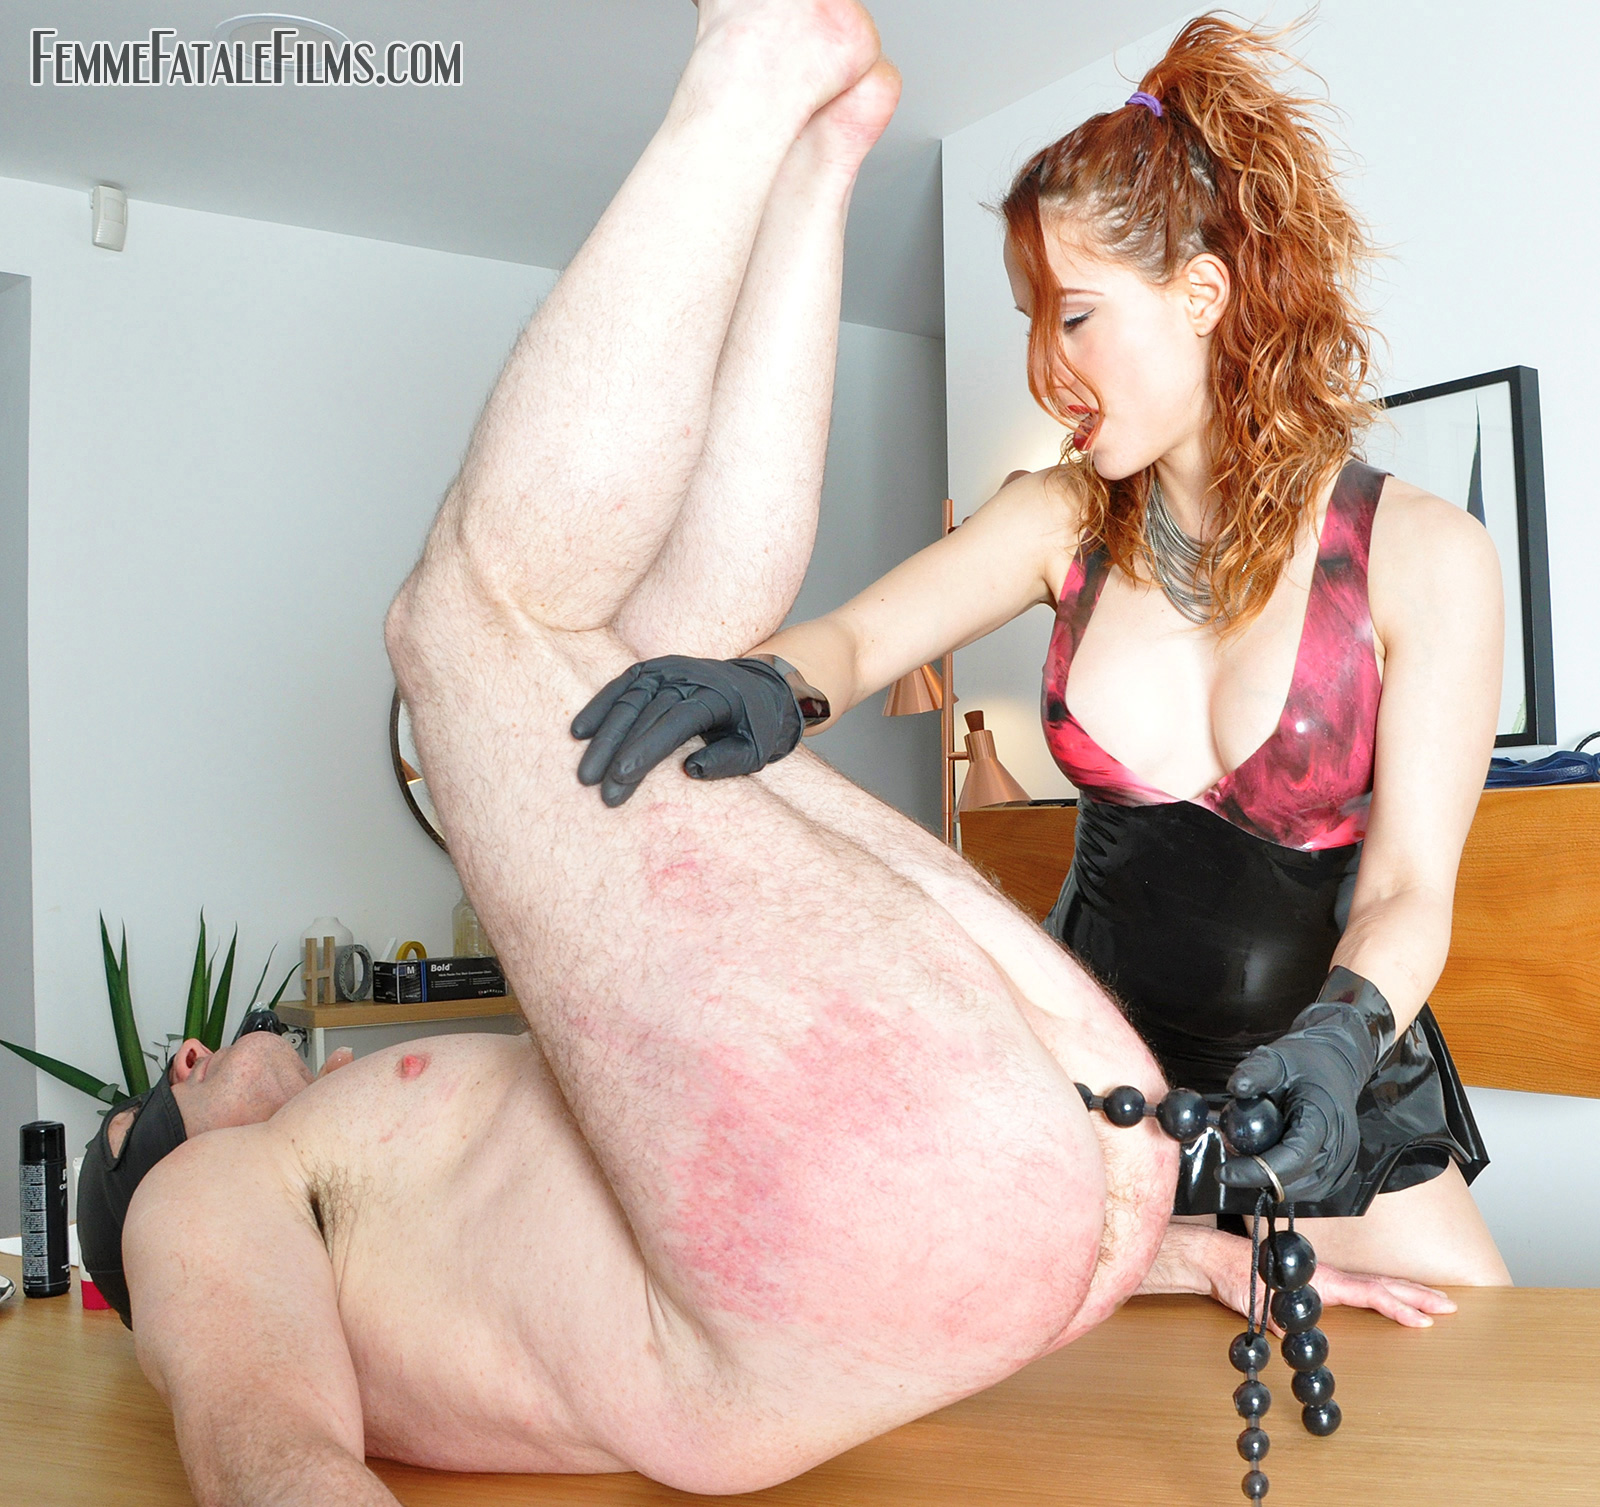 Butt Plugged cock and balls with CBT torture humiliation